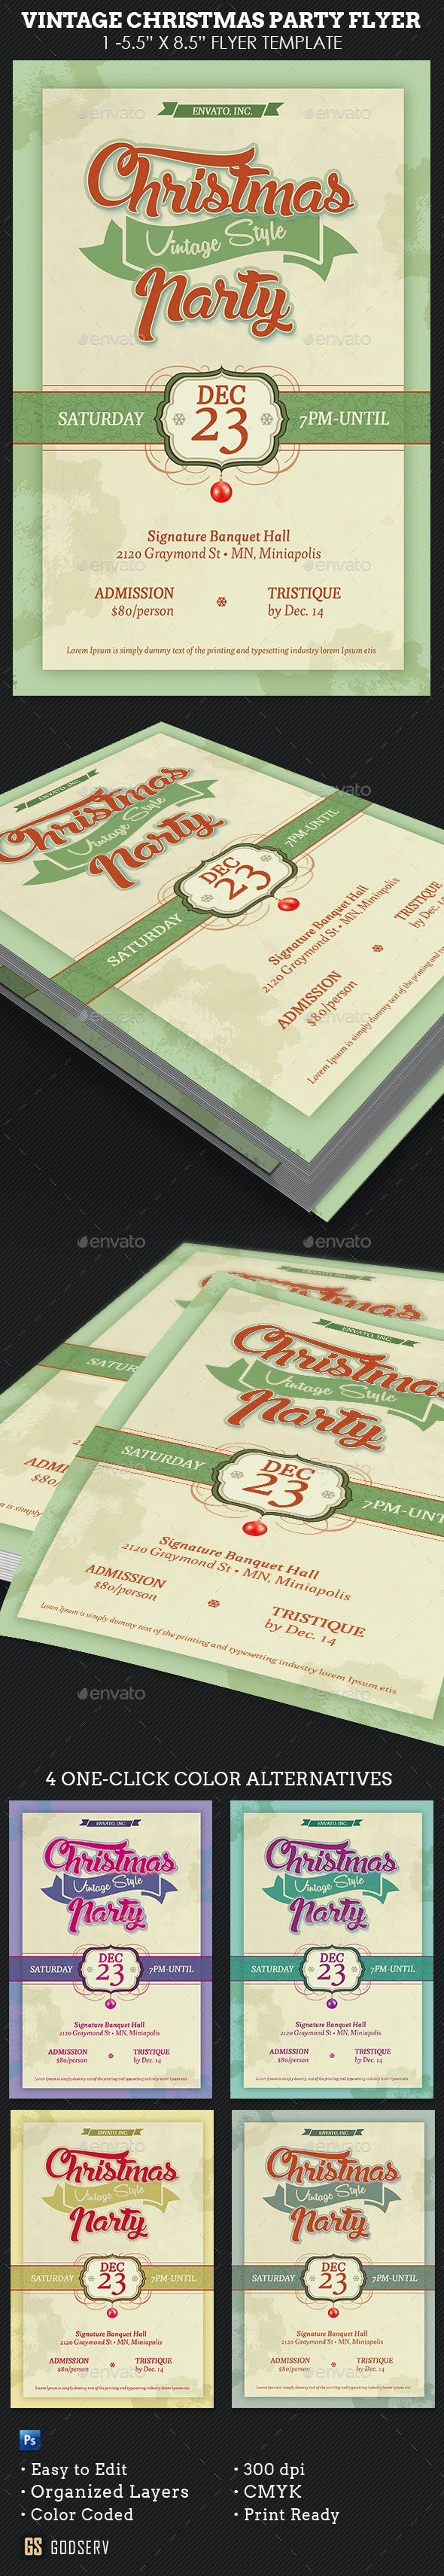 Vintage Christmas Party Flyer Template - Holidays Events